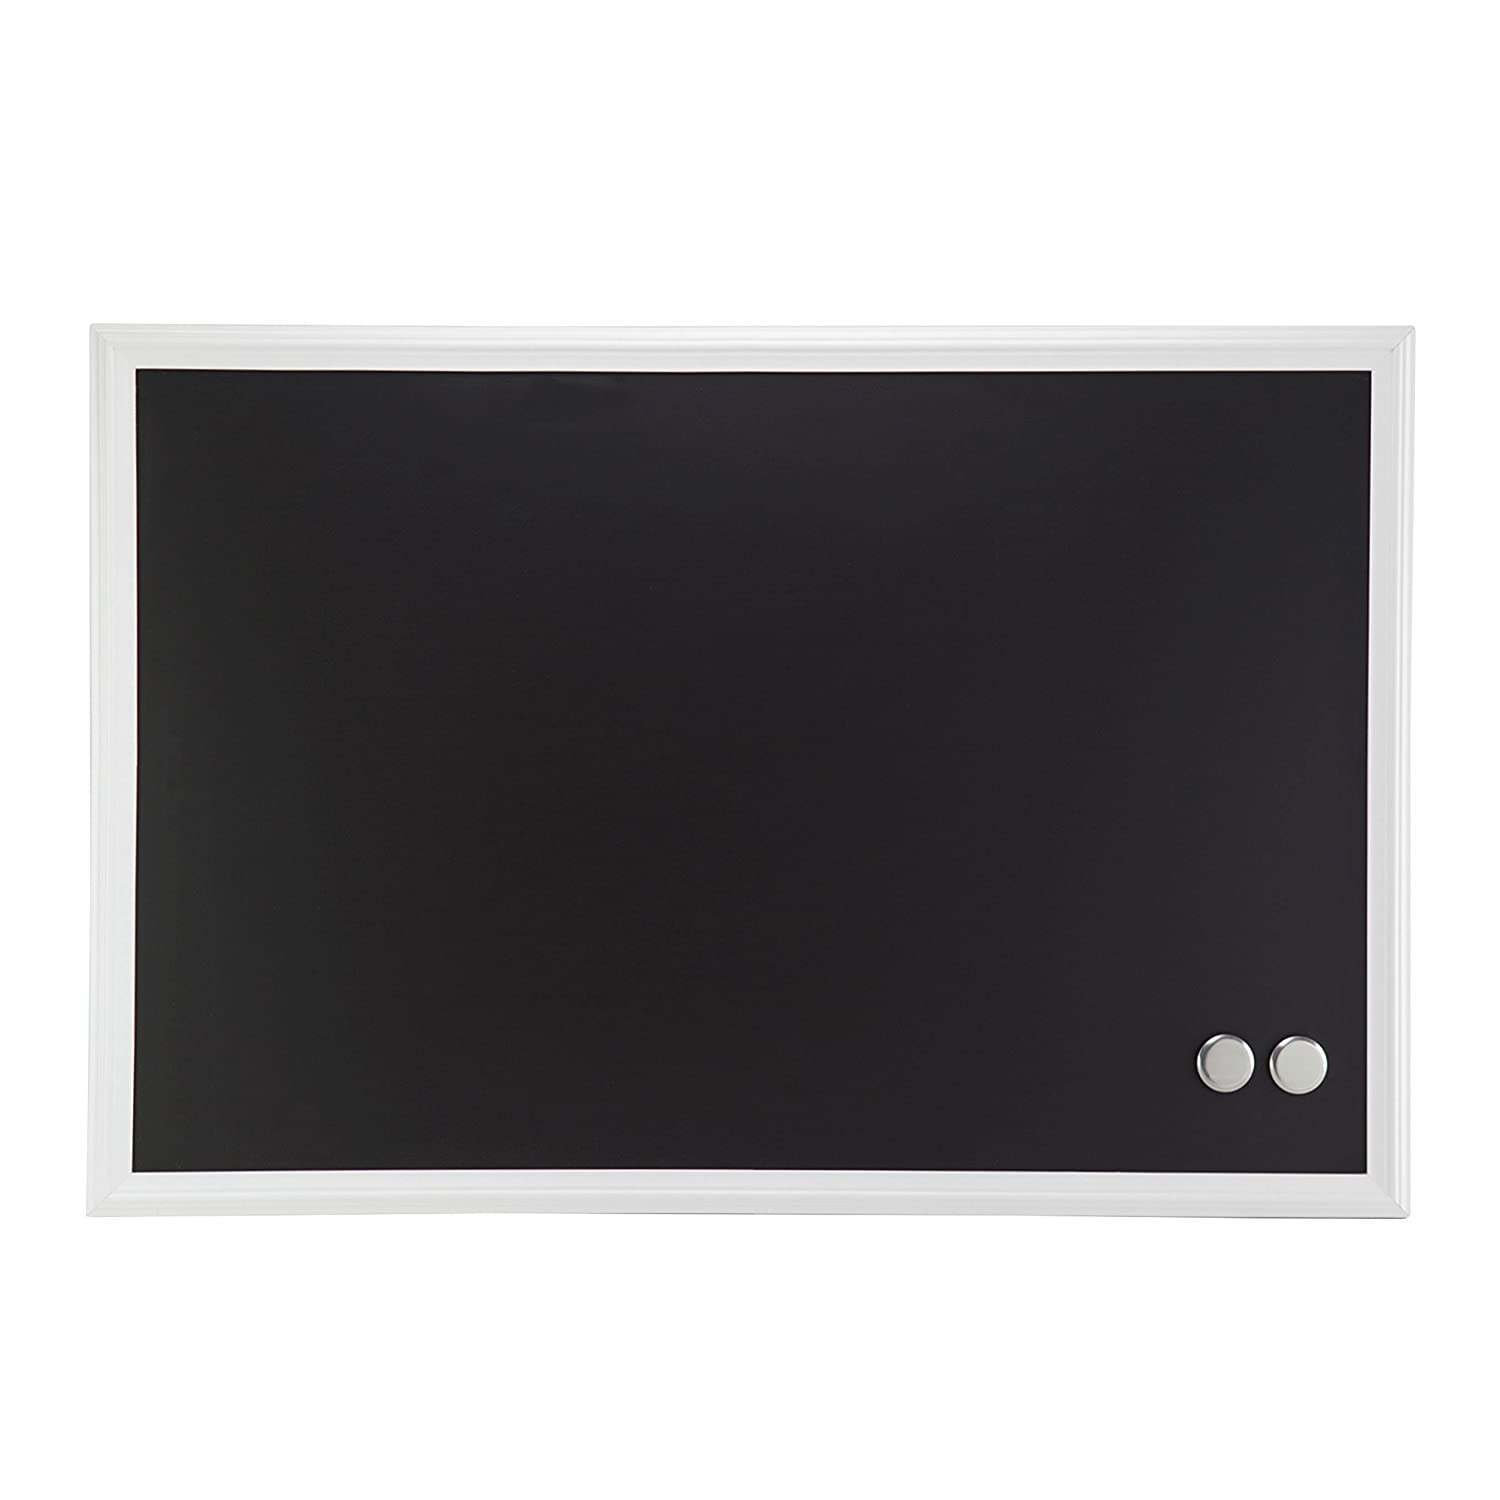 Amazon.com : U Brands Magnetic Chalkboard, 20 x 30 Inches, White ...